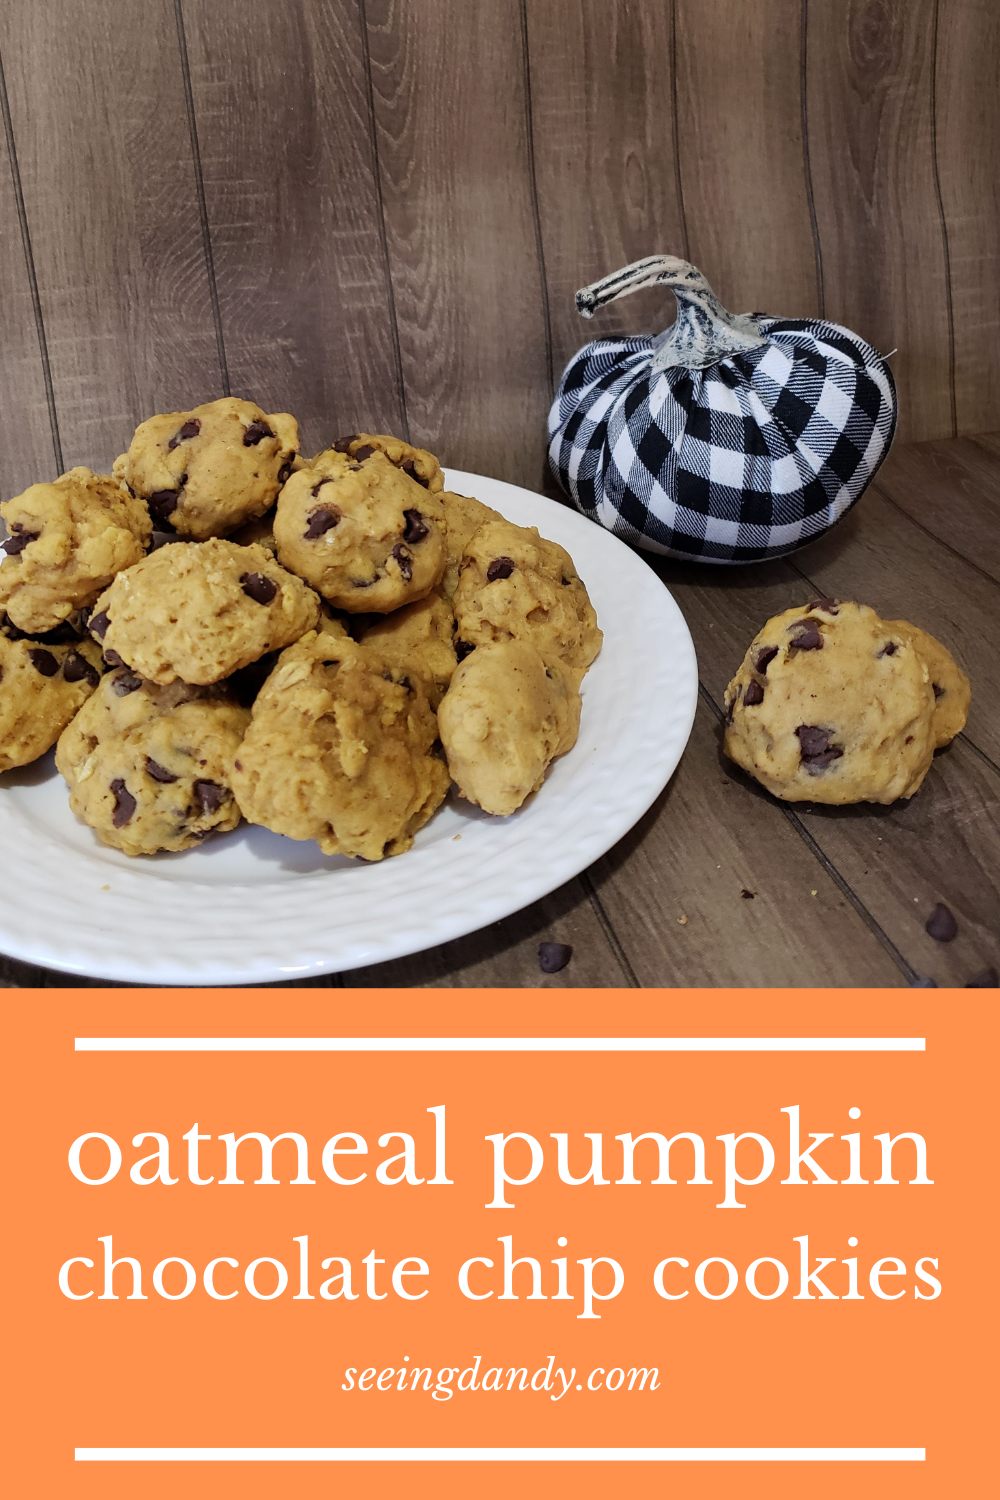 fall cookies, pumpkin chocolate chip cookies, fall recipes, delicious cookies, oatmeal cookie recipe, flannel pumpkin